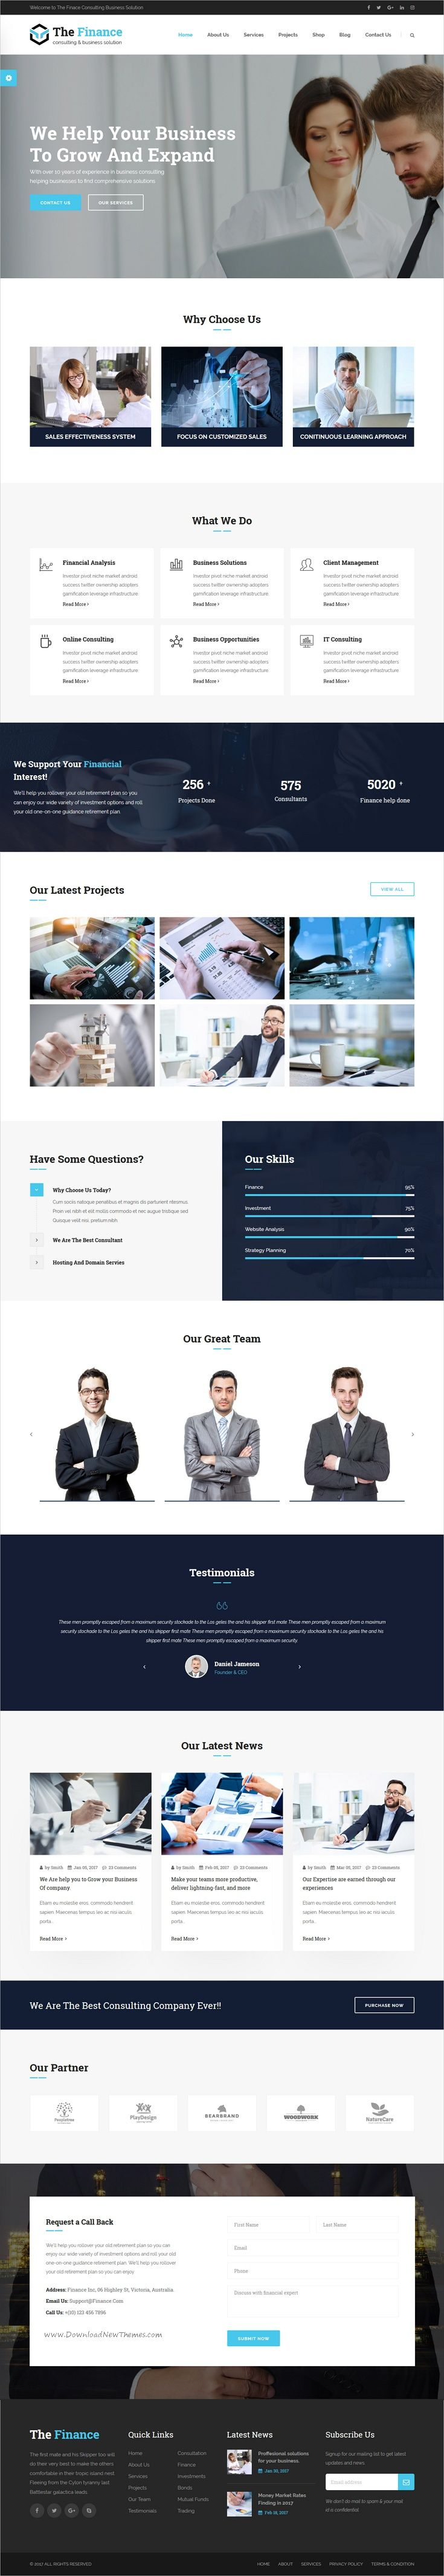 The finance is clean and modern design 3in1 responsive #HTML template for #business consulting and #professional service website download now > https://themeforest.net/item/the-finance-business-consulting-and-professional-services-html-template/19956712?ref=Datasata